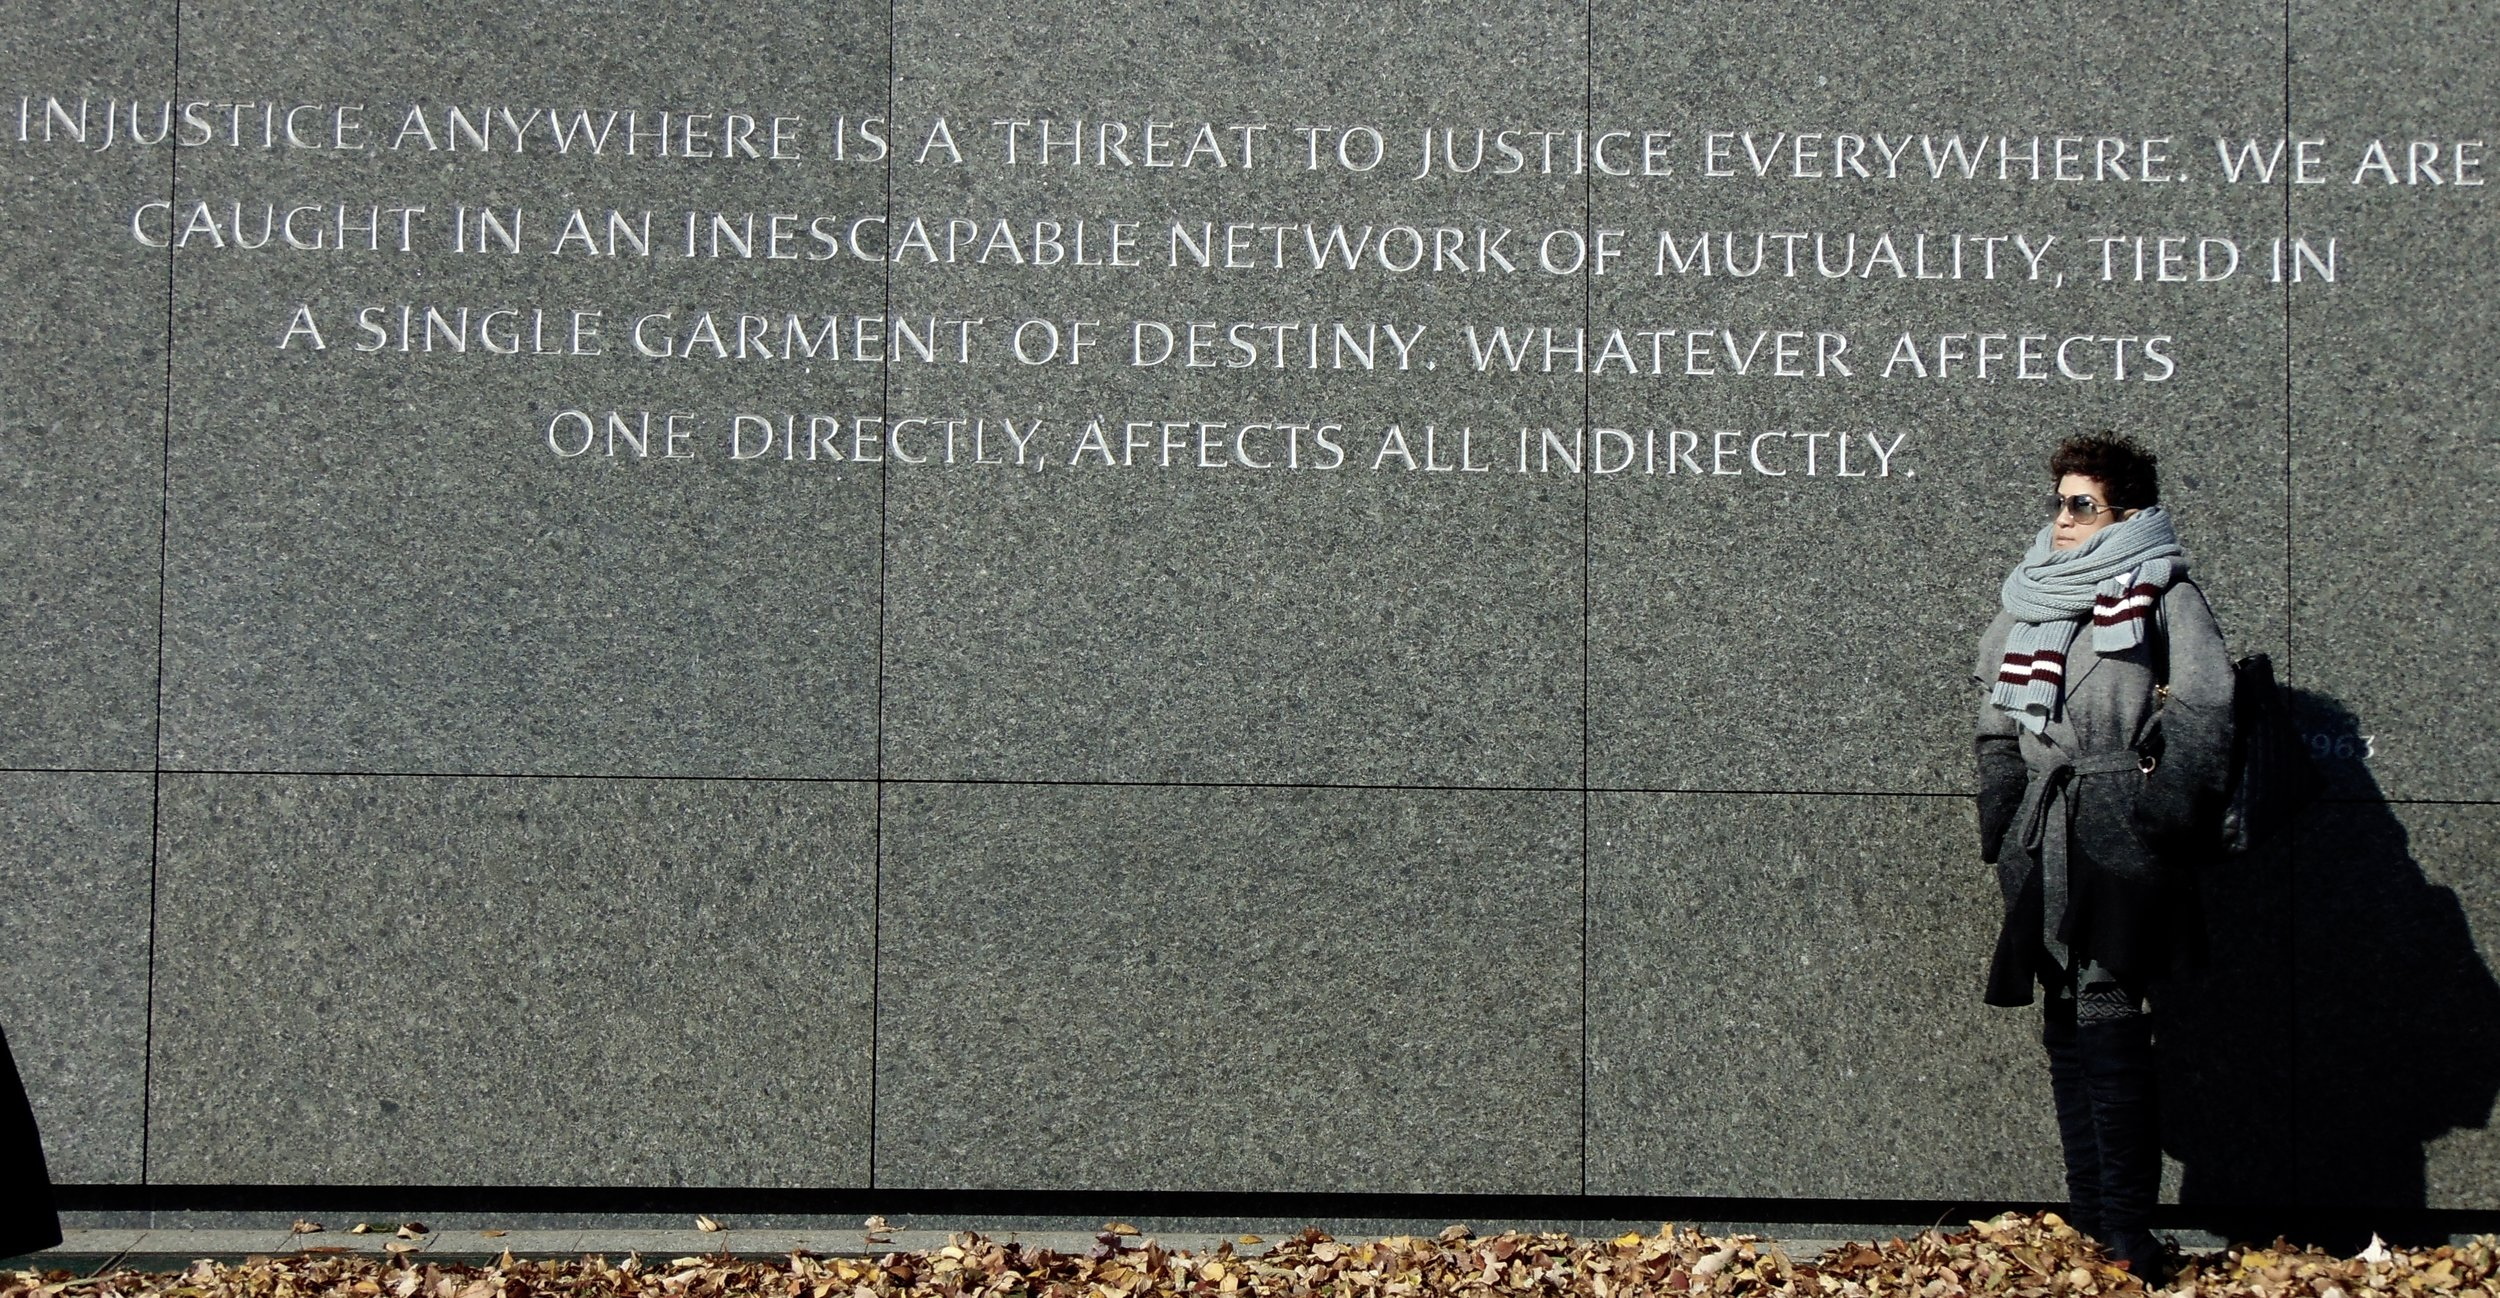 One of my favorite quotes from the wall surrounding the Martin Luther King Monument.